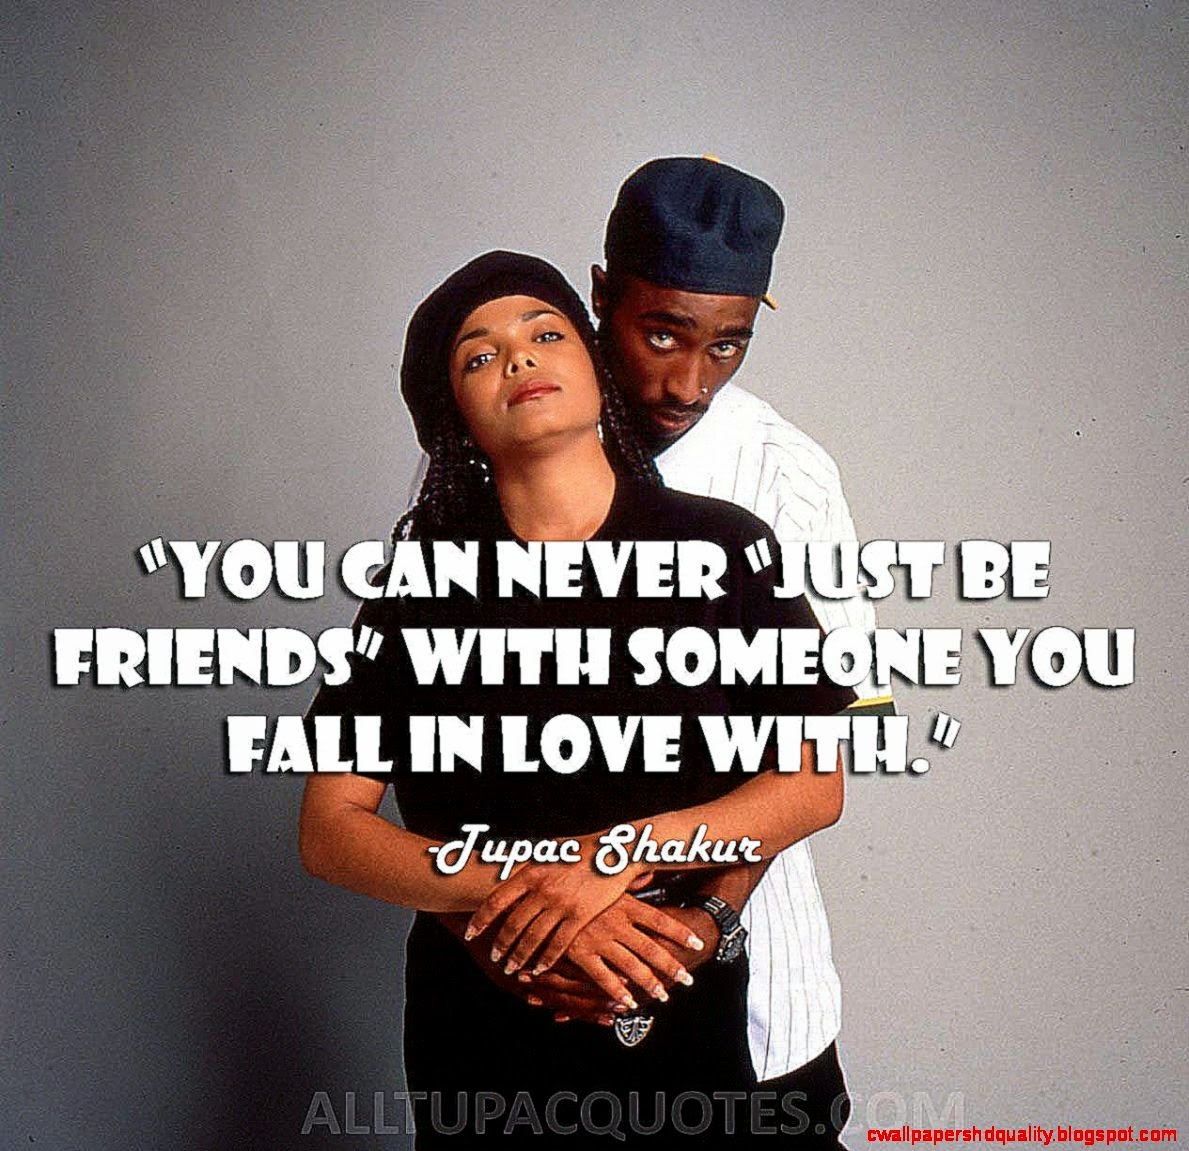 Tupac Friend Quotes. QuotesGram